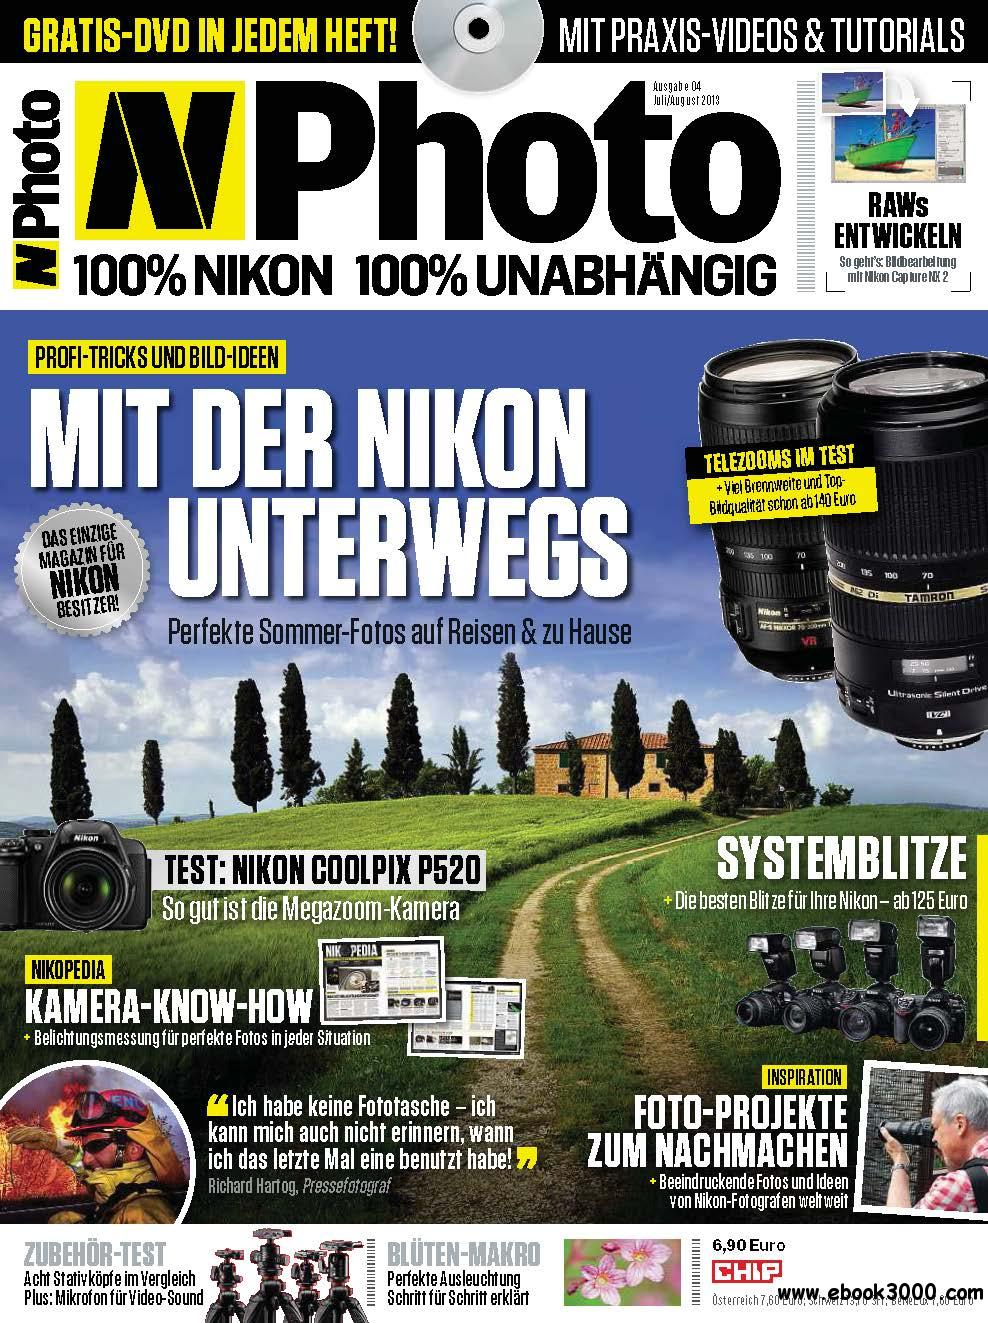 CHIP N-Photo - Magazin fur Nikon-Besitzer Juli/August 04/2013 free download